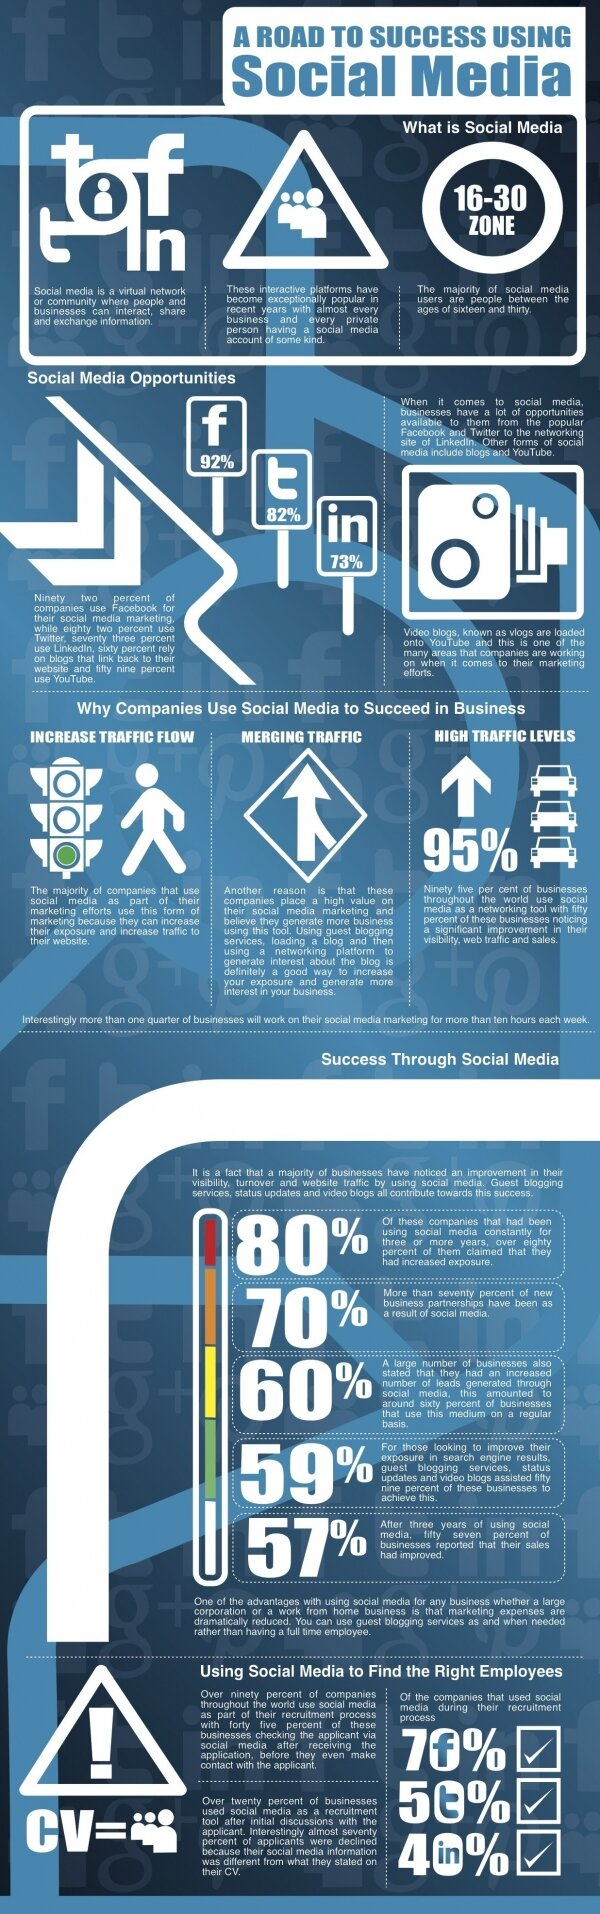 Social Media - The Road to Success - Infographic